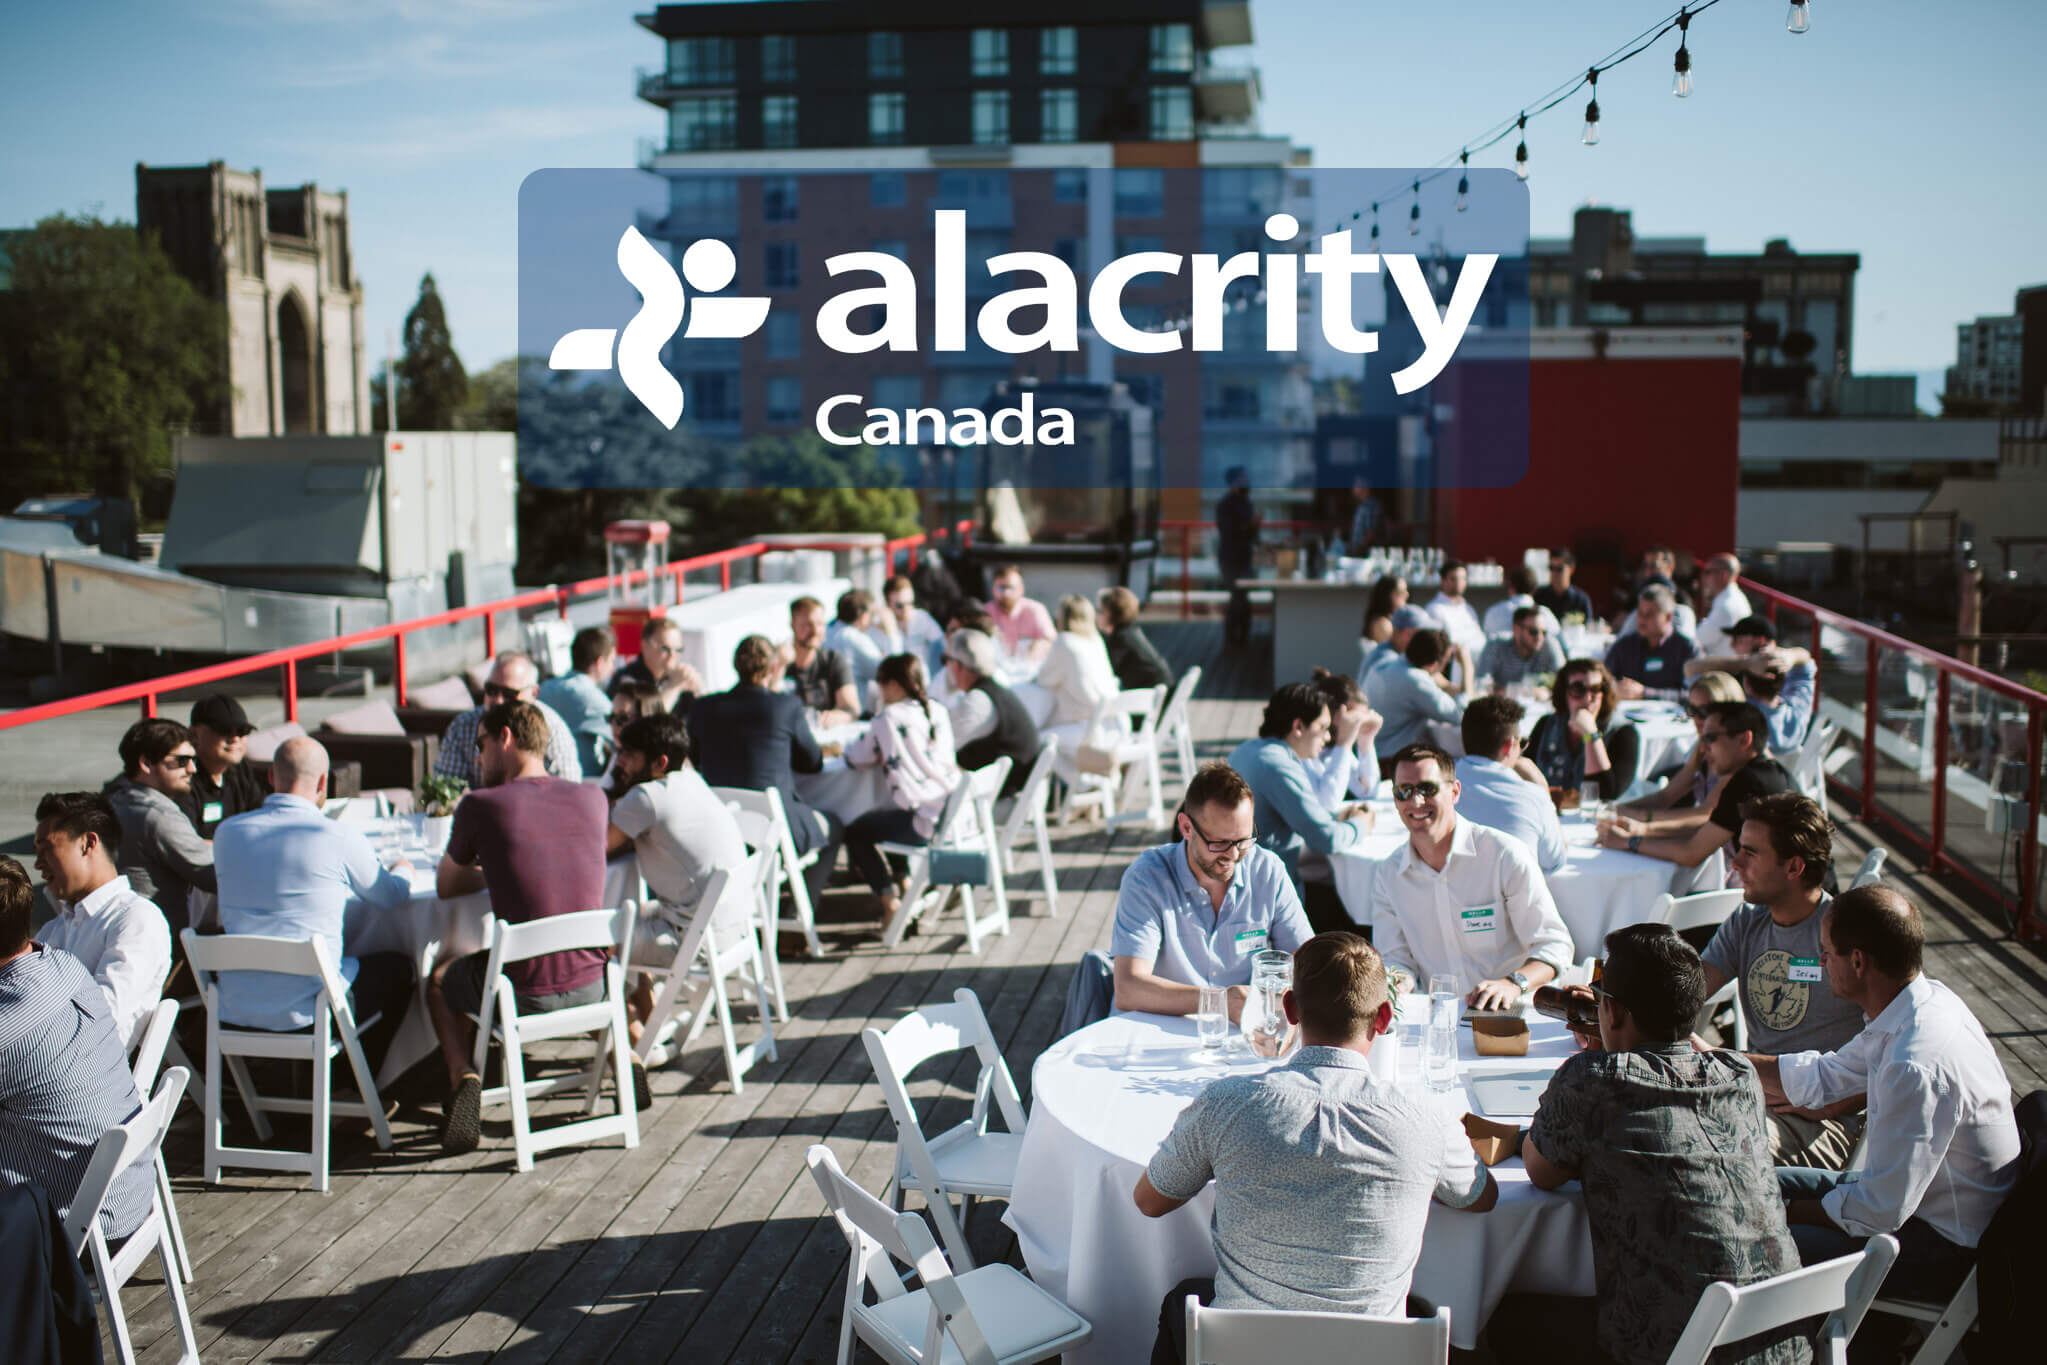 Turn the Tables 2019 - Alacrity Canada Investor Event Recap